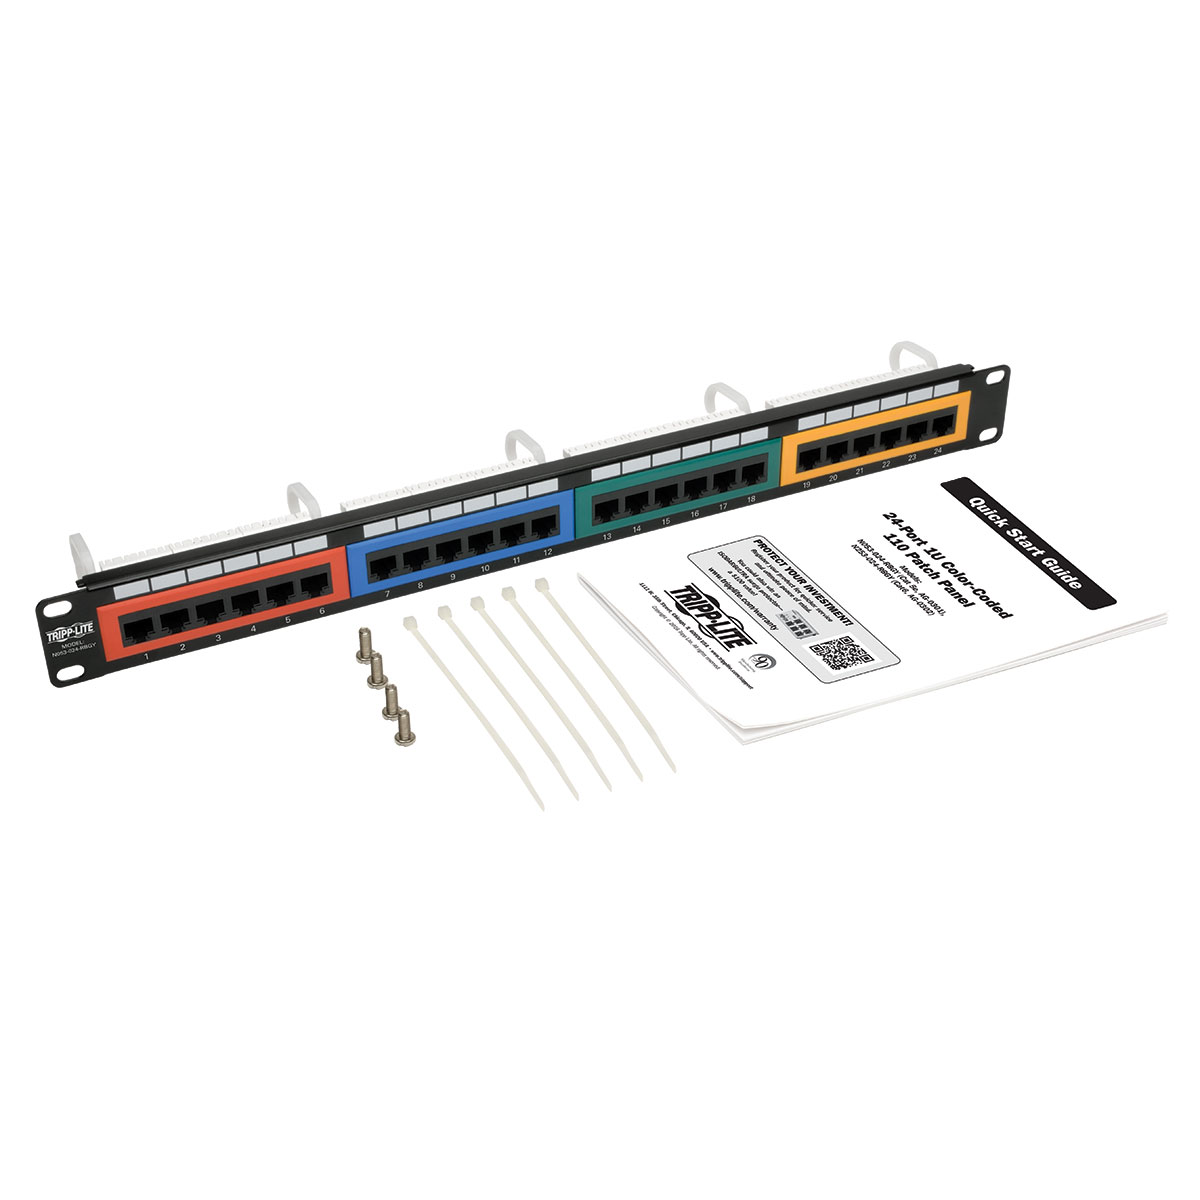 Provantage Tripp Lite N253 024 Rbgy 24 Port Cat6 Patch Panel 1urm 568b Wiring Color Coded 110 Rj45 Ethernet